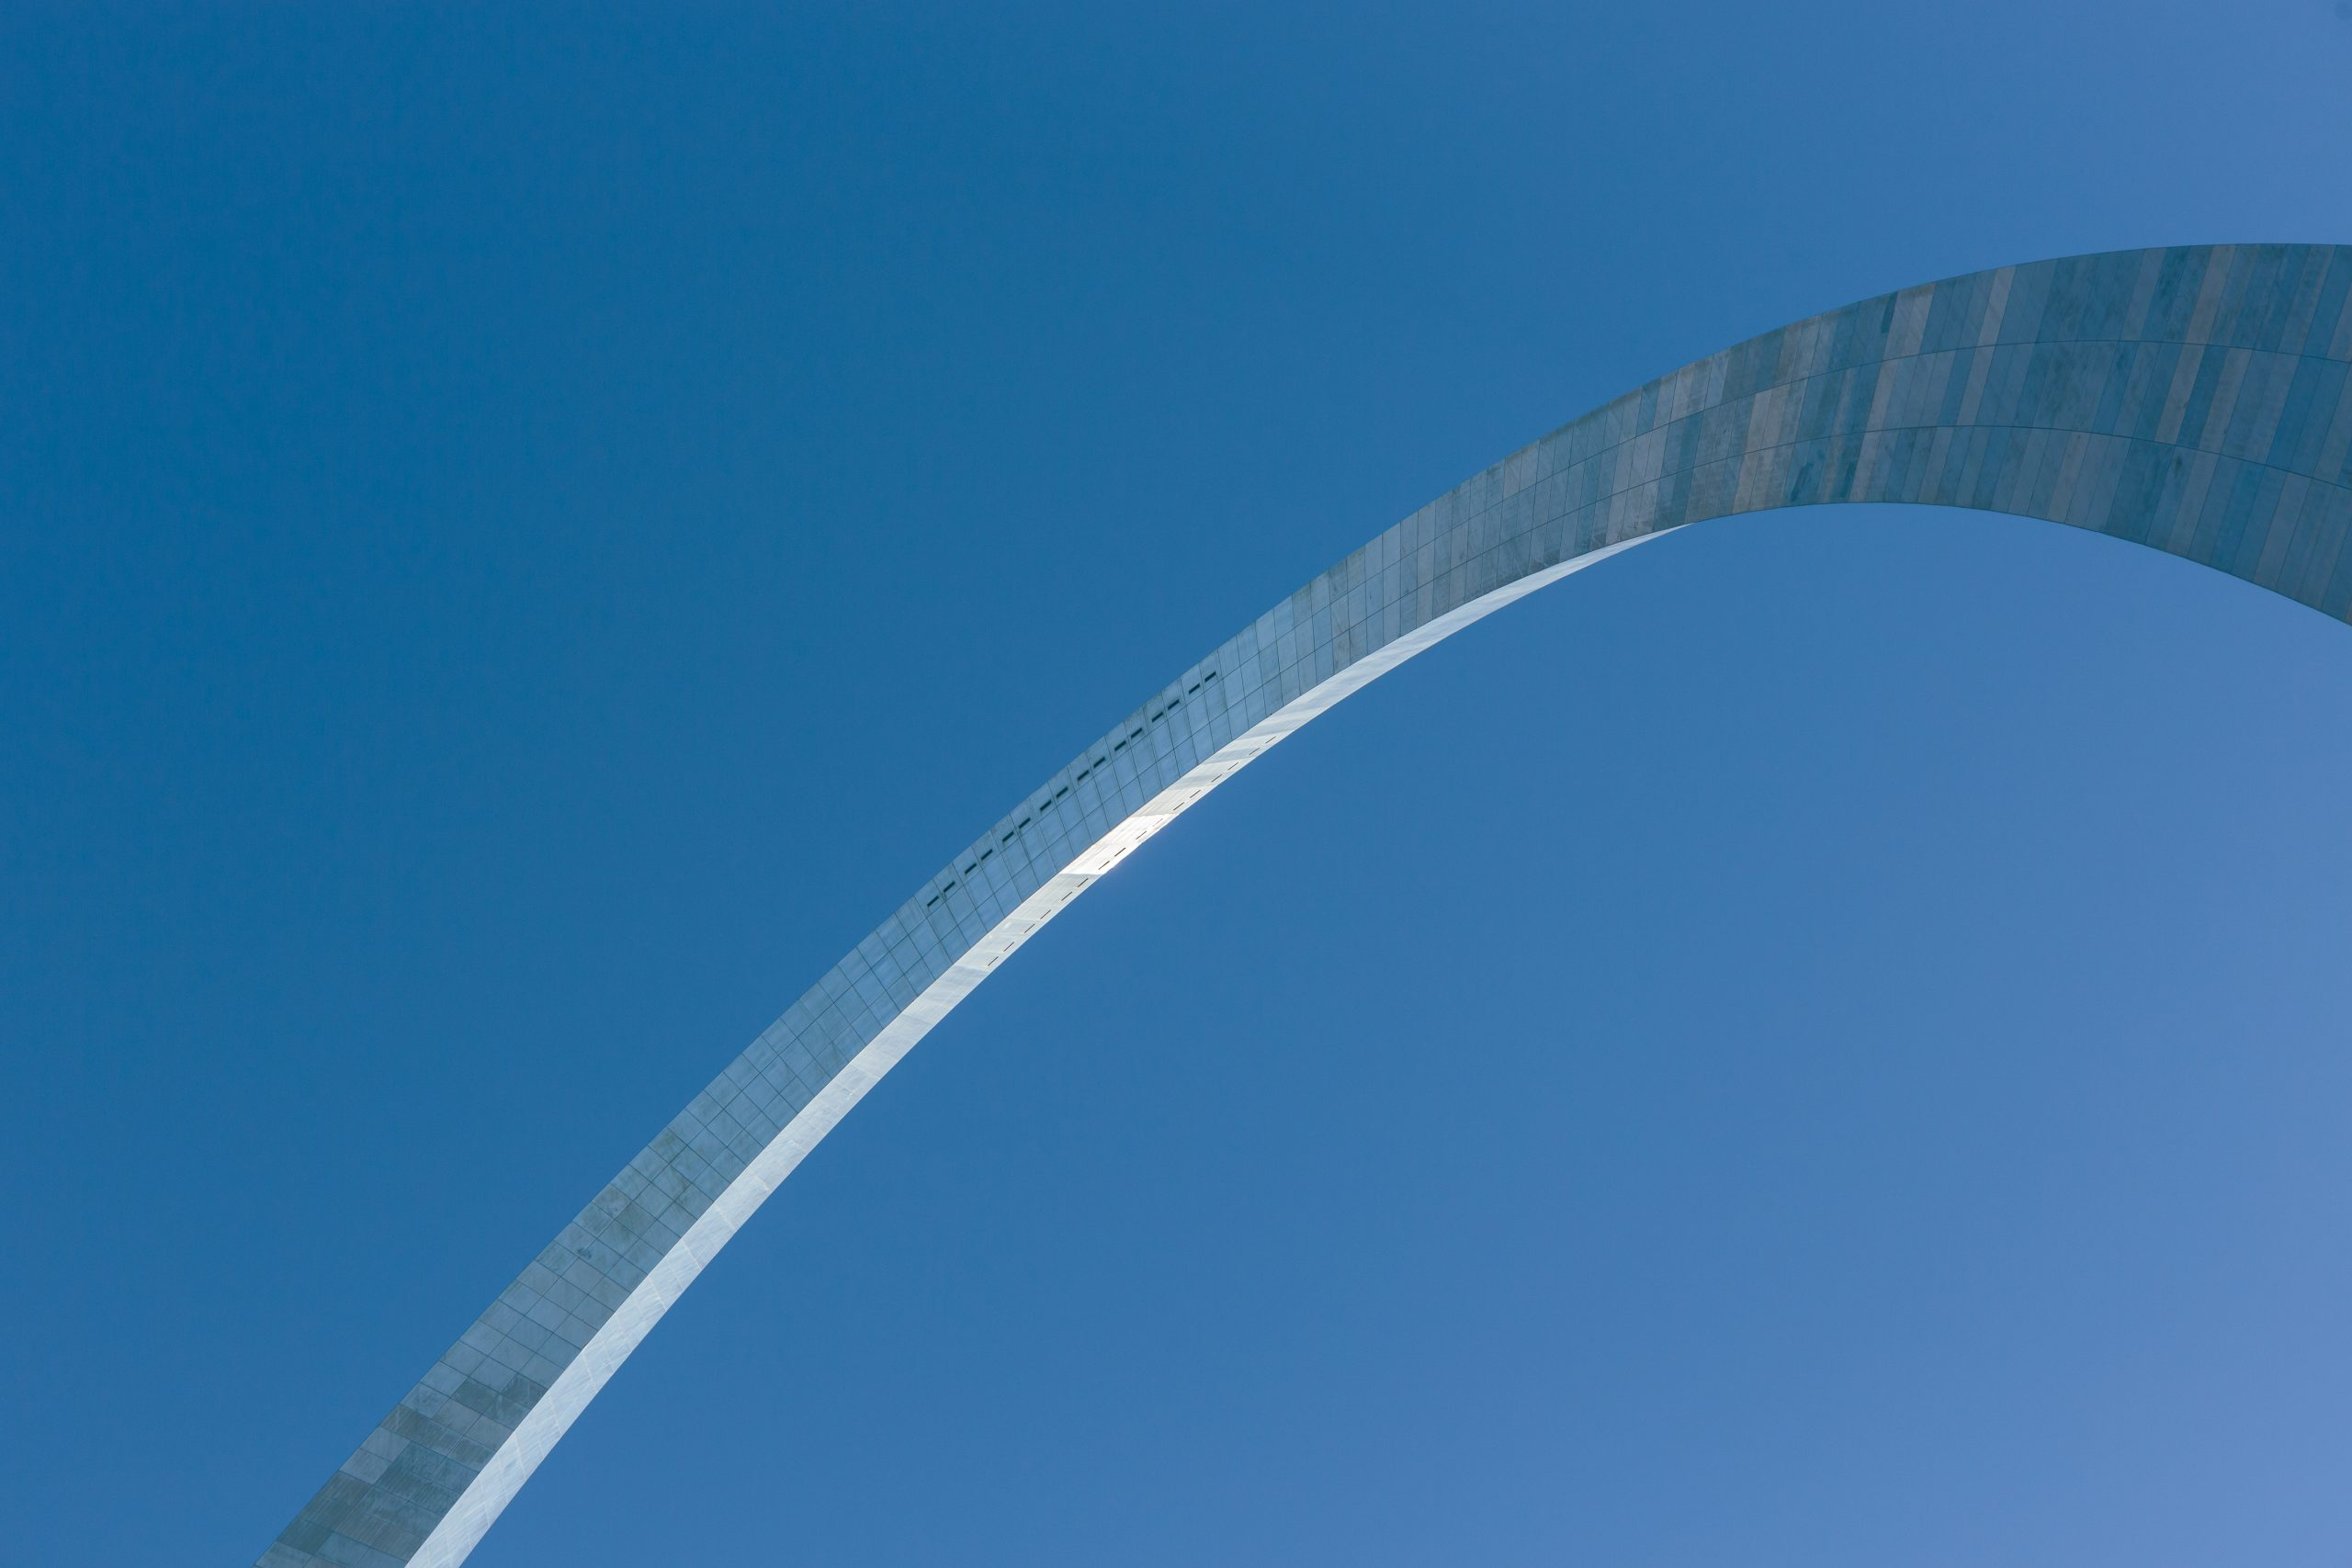 A somewhat abstract view of the Gateway Arch in St. Louis, Missouri